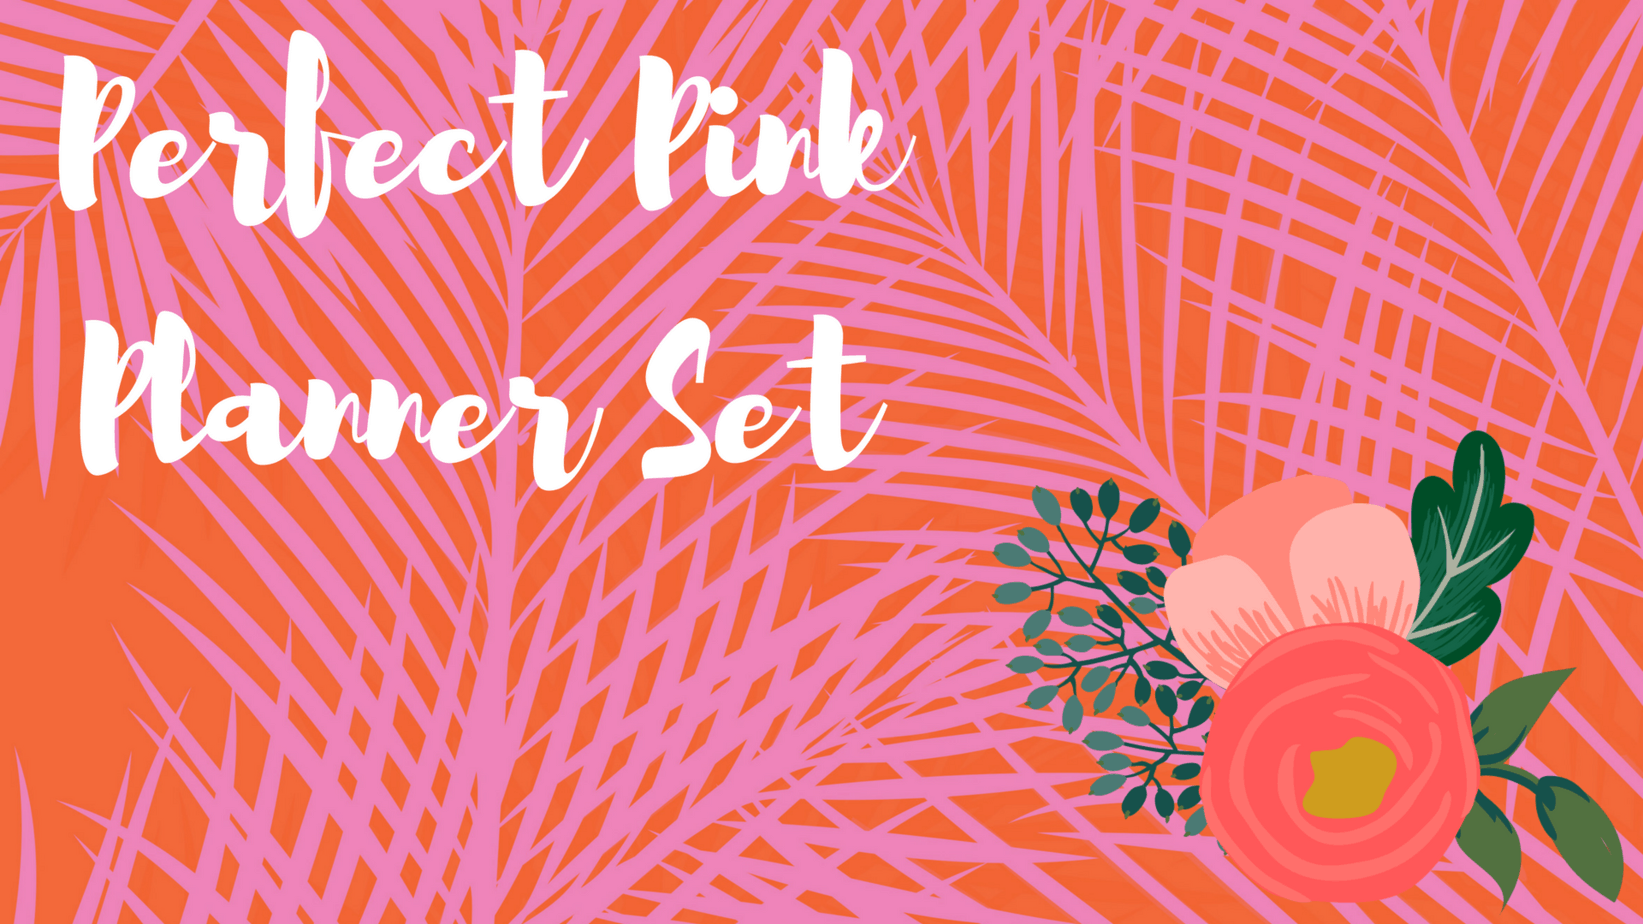 Perfect Pink Planner Set